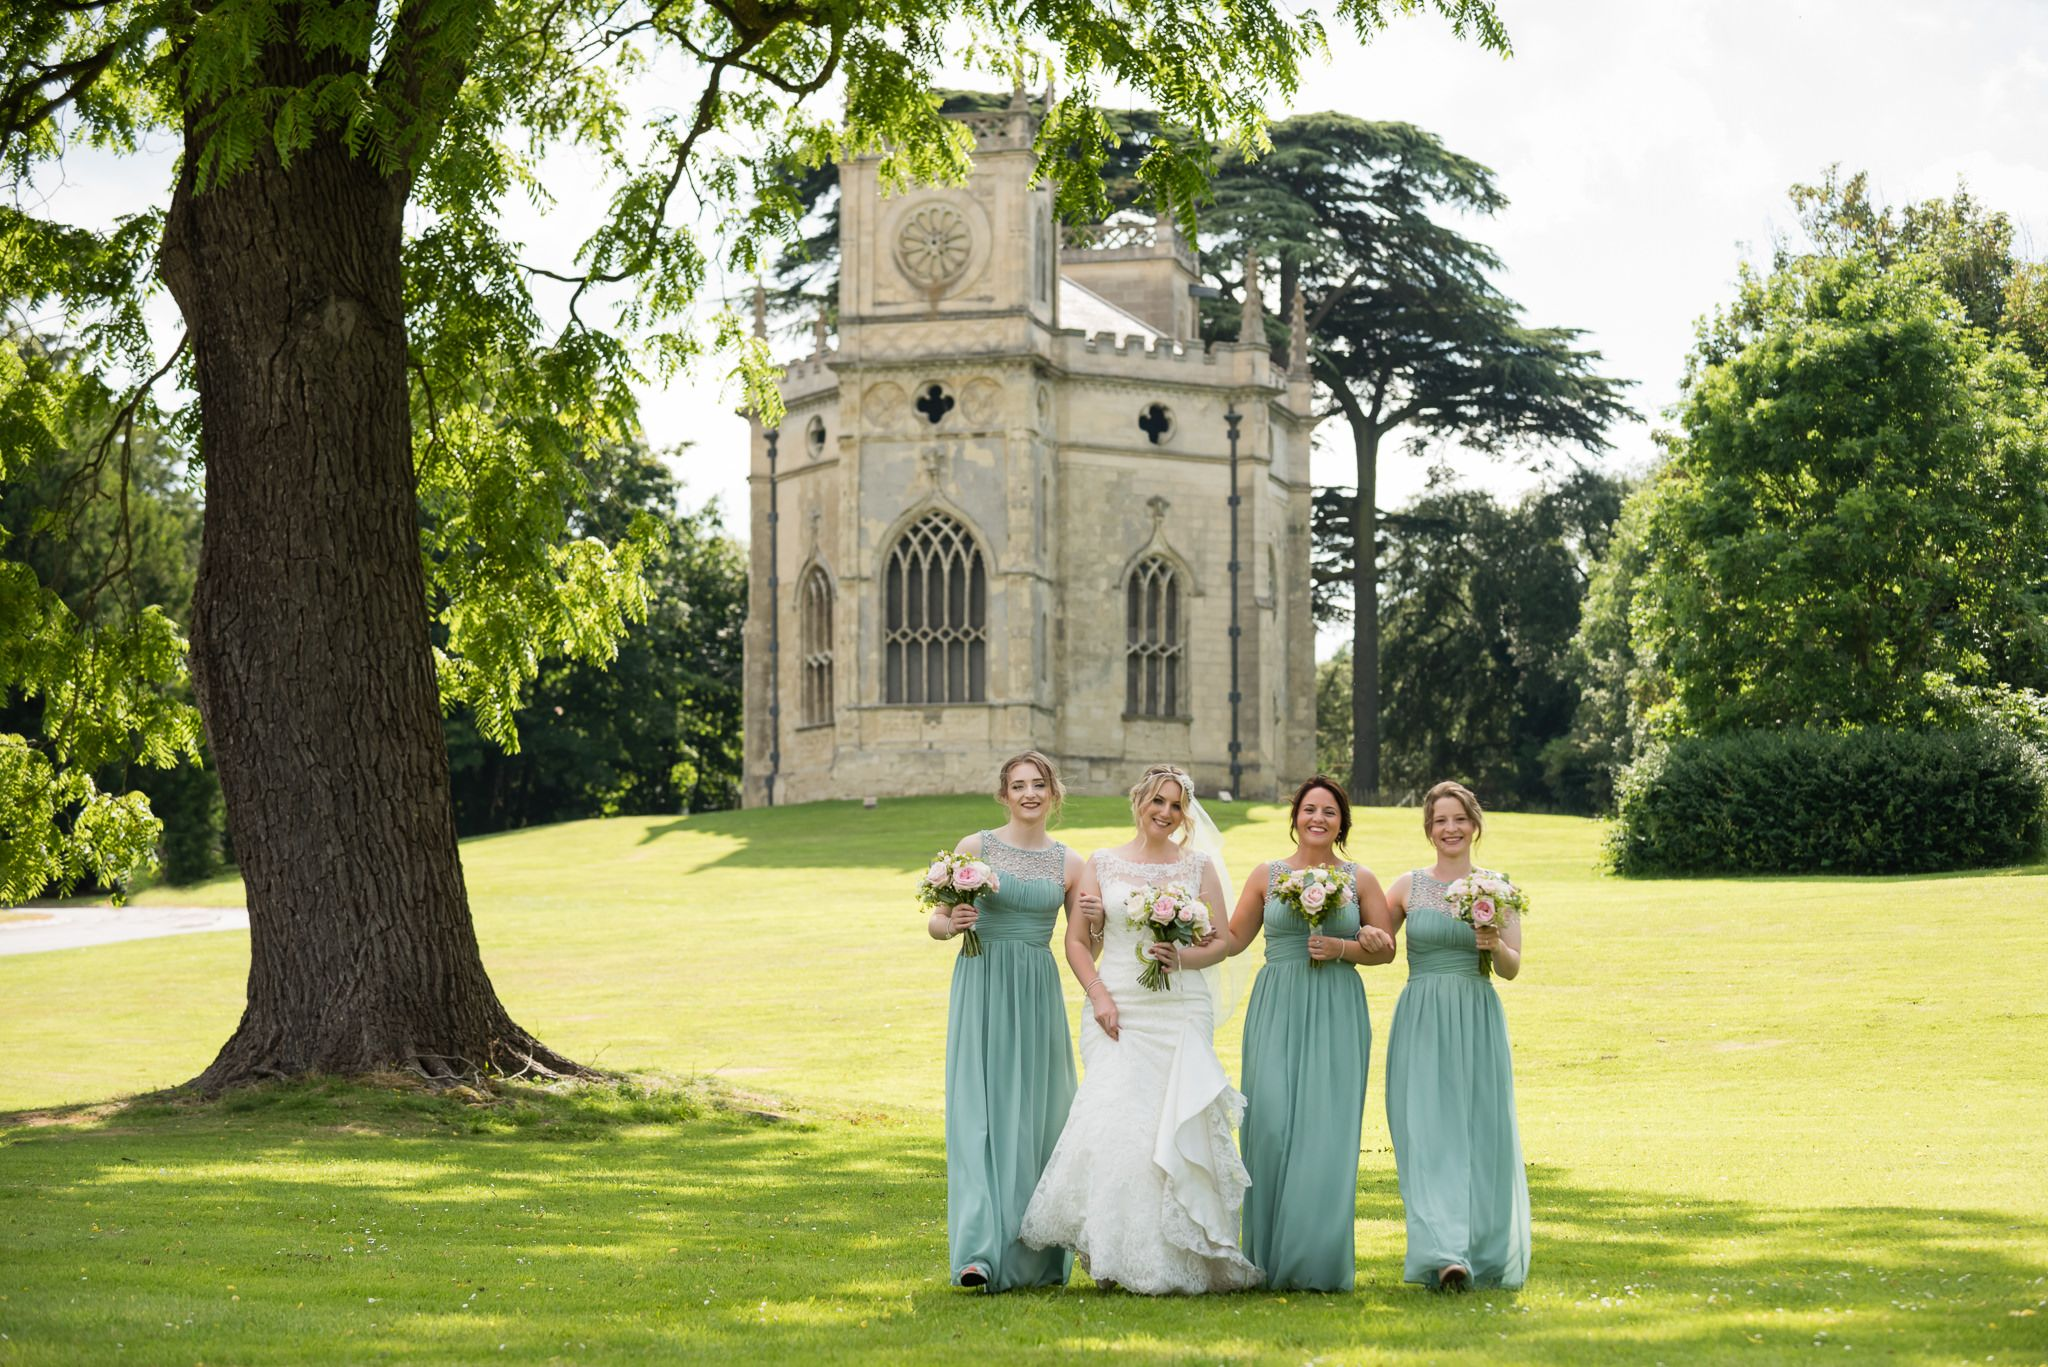 Wedding Hartwell House Photography Andysidders